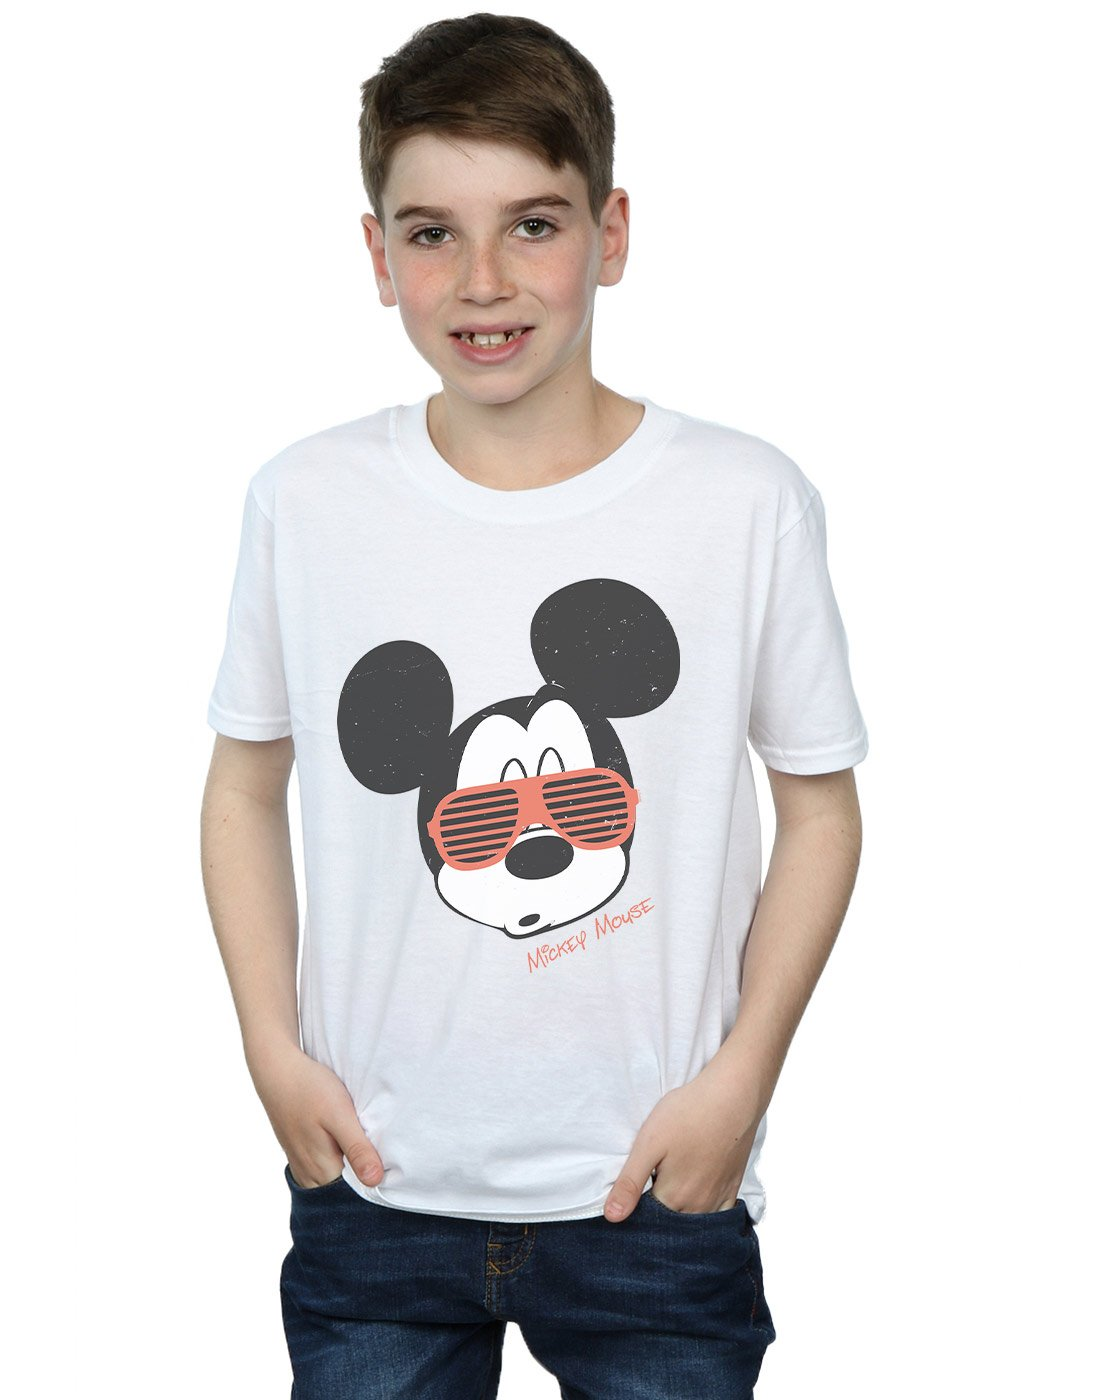 Disney Boys Mickey Mouse Sunglasses T-Shirt White 5-6 Years